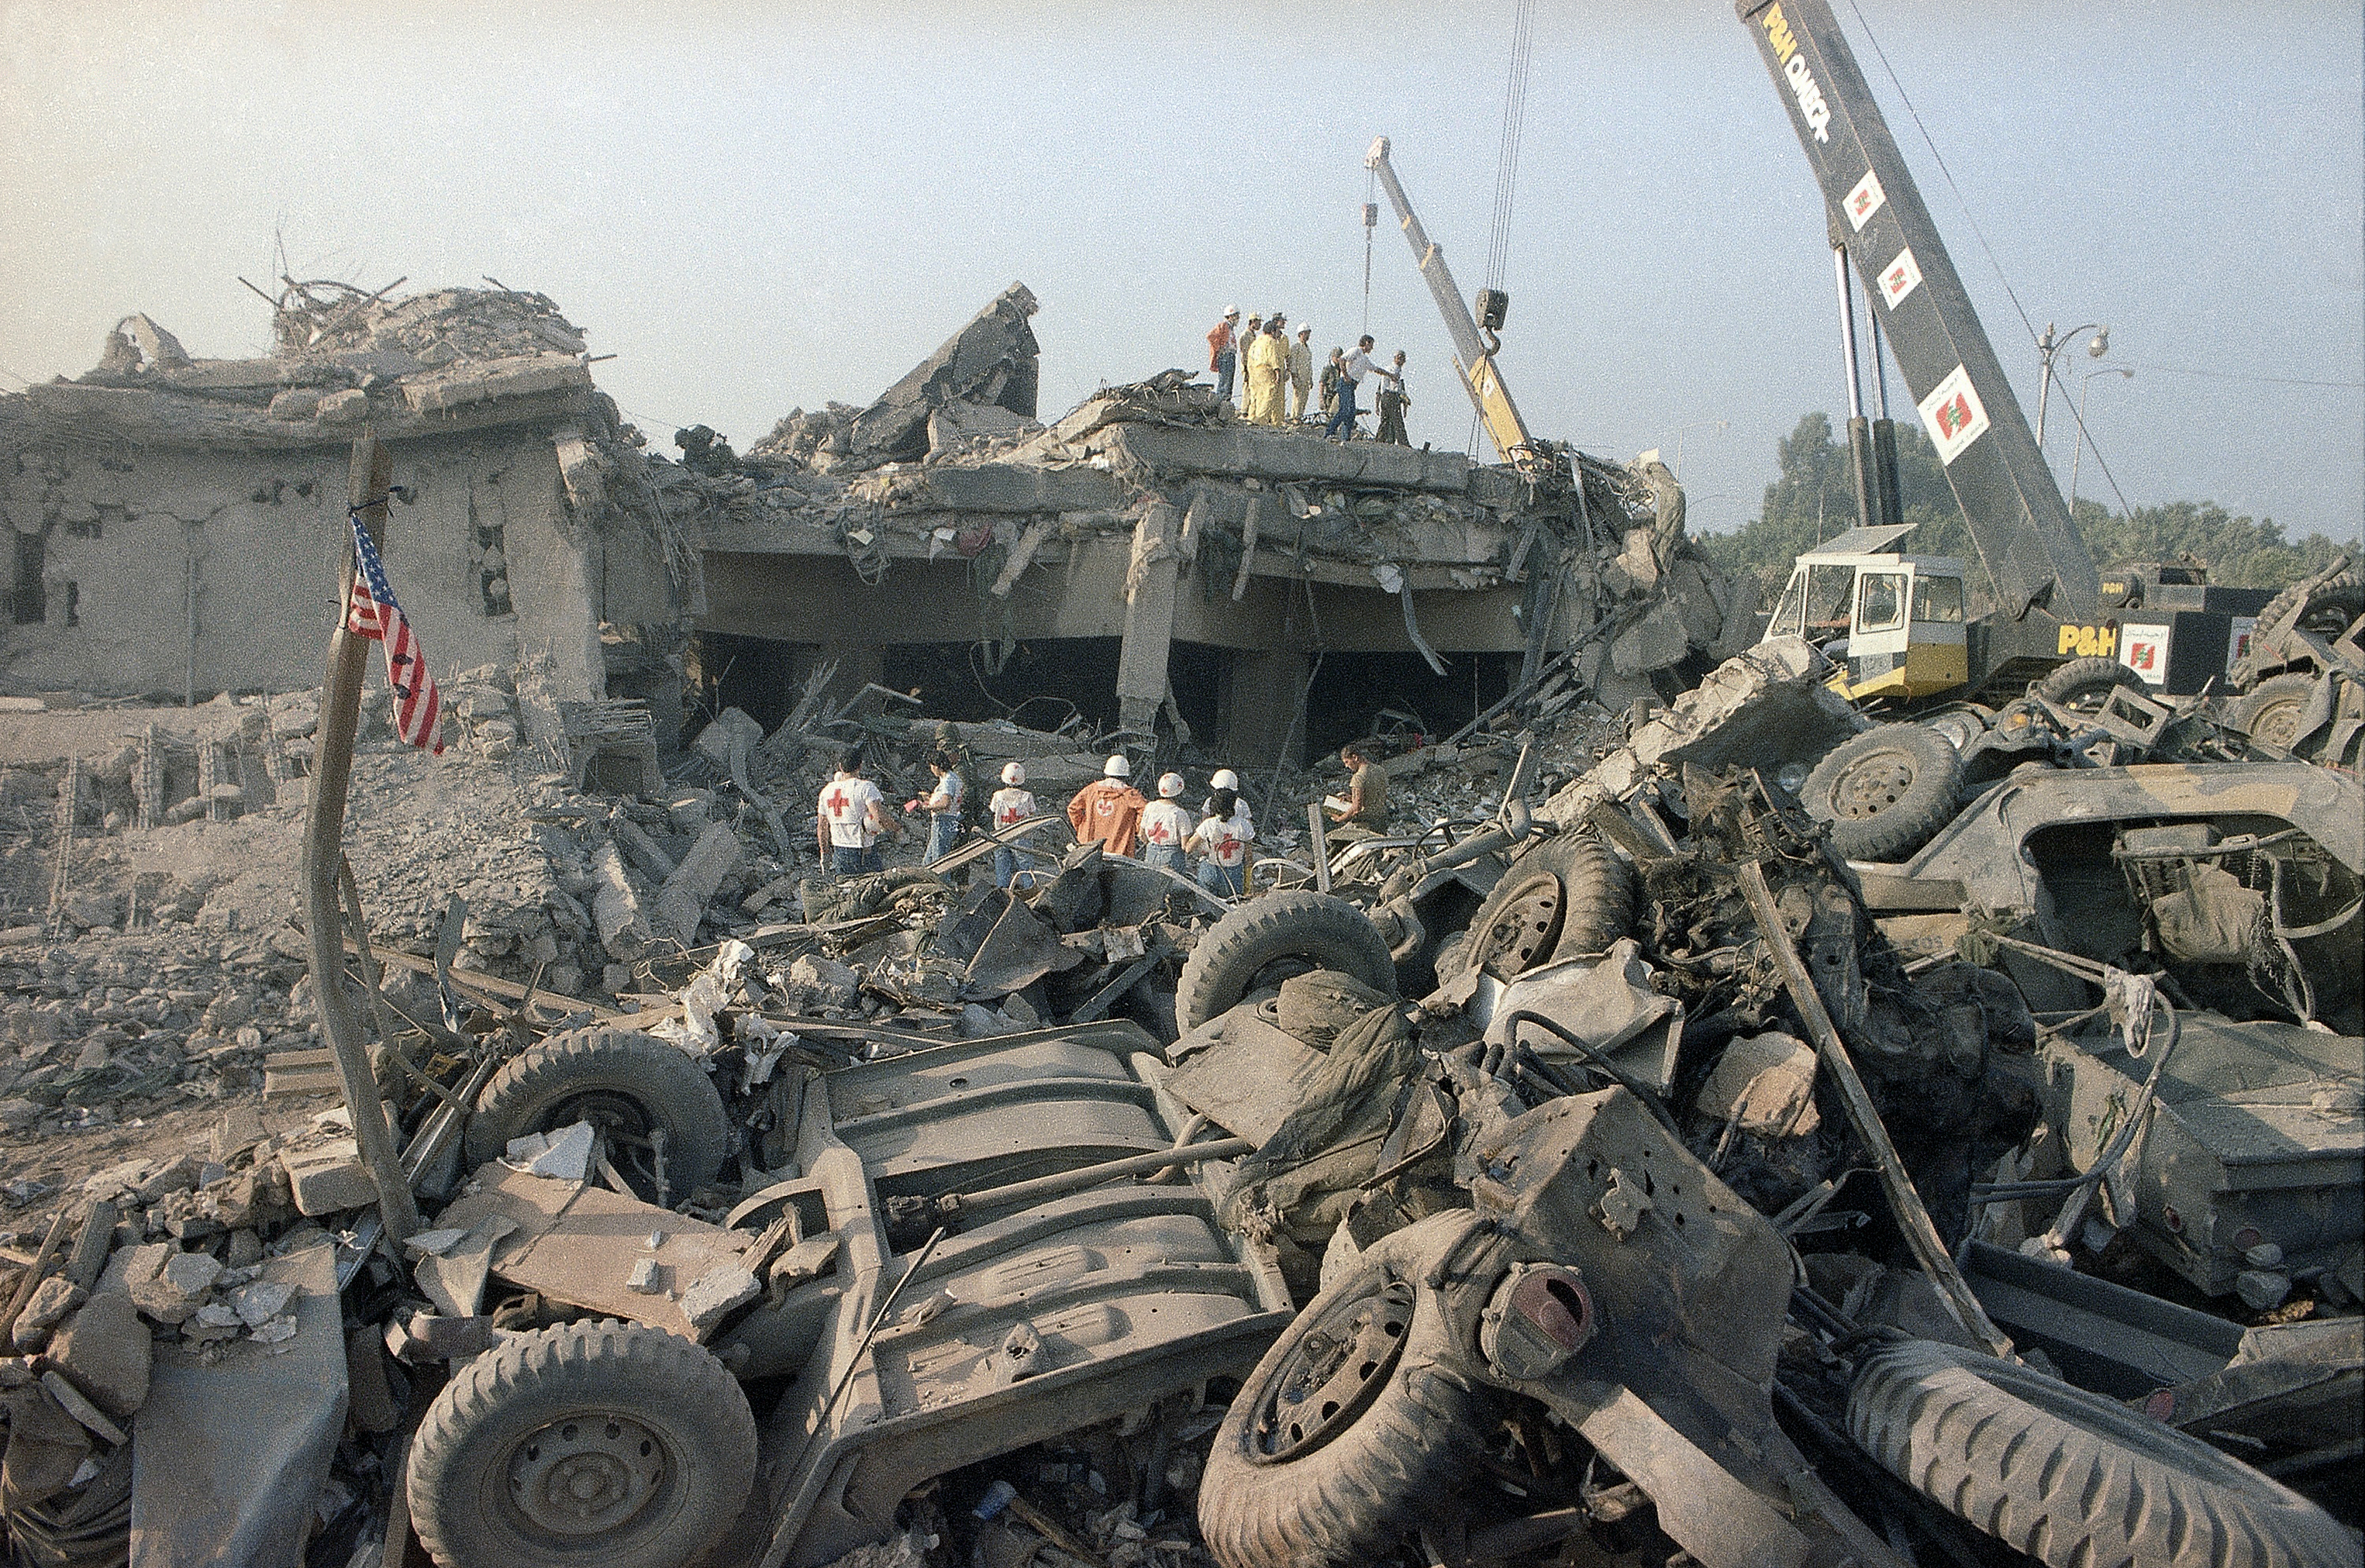 supreme court rules for beirut embassy bombing victims against supreme court rules for beirut embassy bombing victims against ian bank in 6 2 ruling washington times